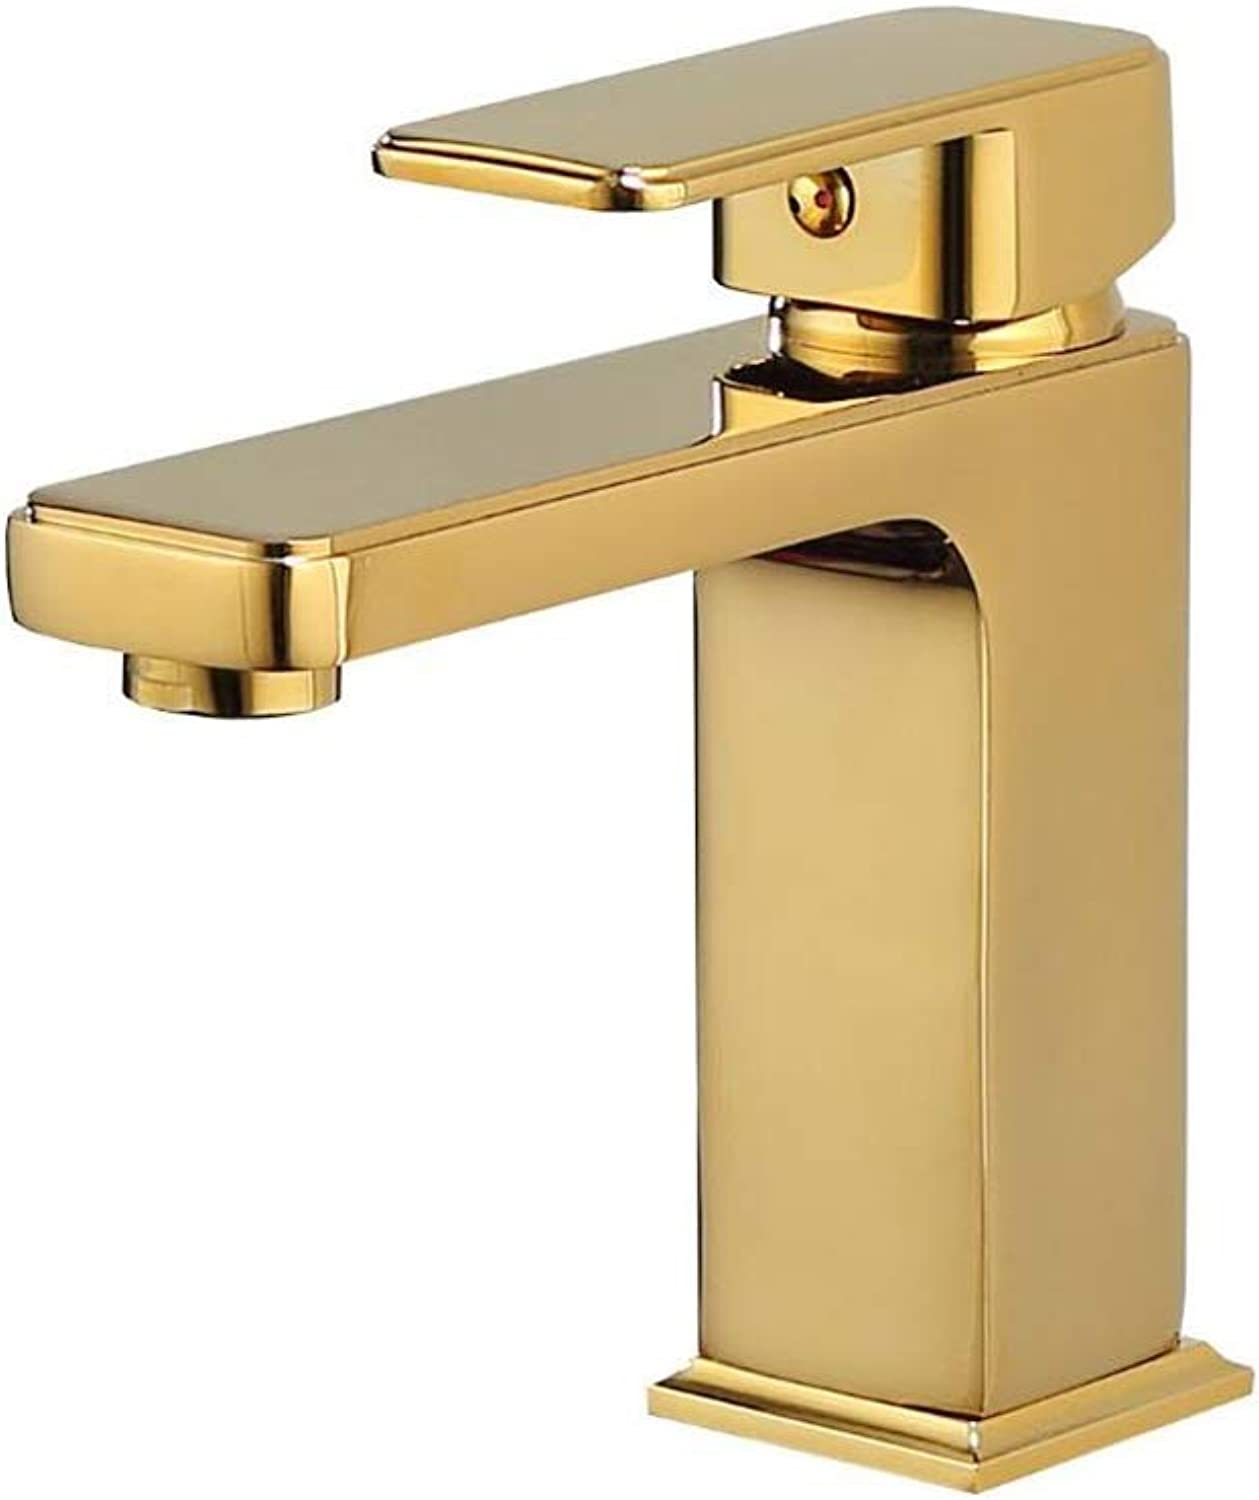 MuMa Faucet gold Brass Single Hole Hot Cold Mixer Kitchen Bathroom Sink (color   gold)